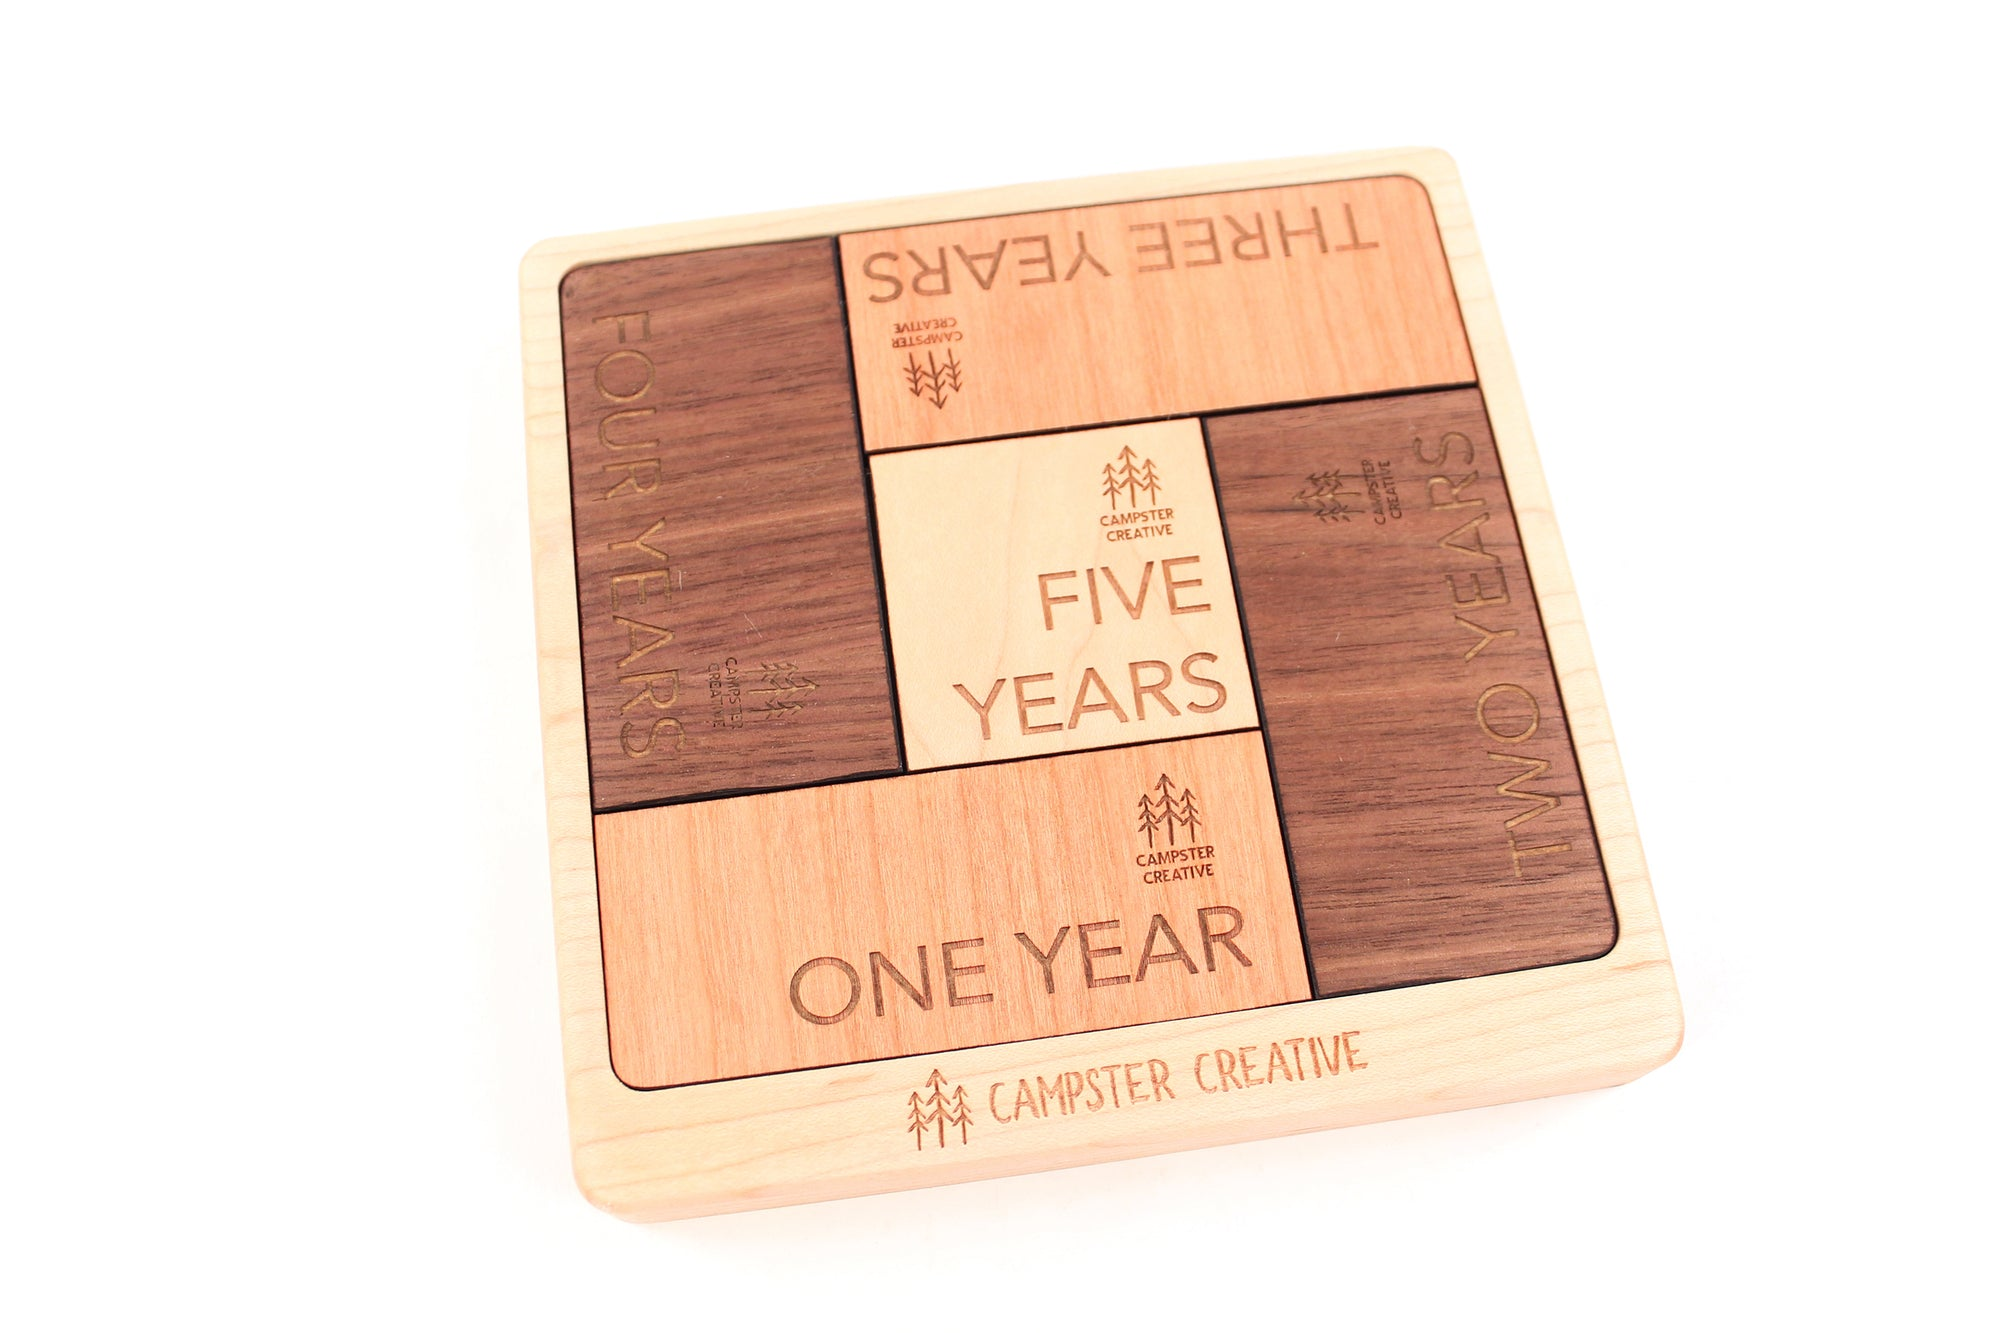 employee anniversary gift idea wooden puzzle with logo